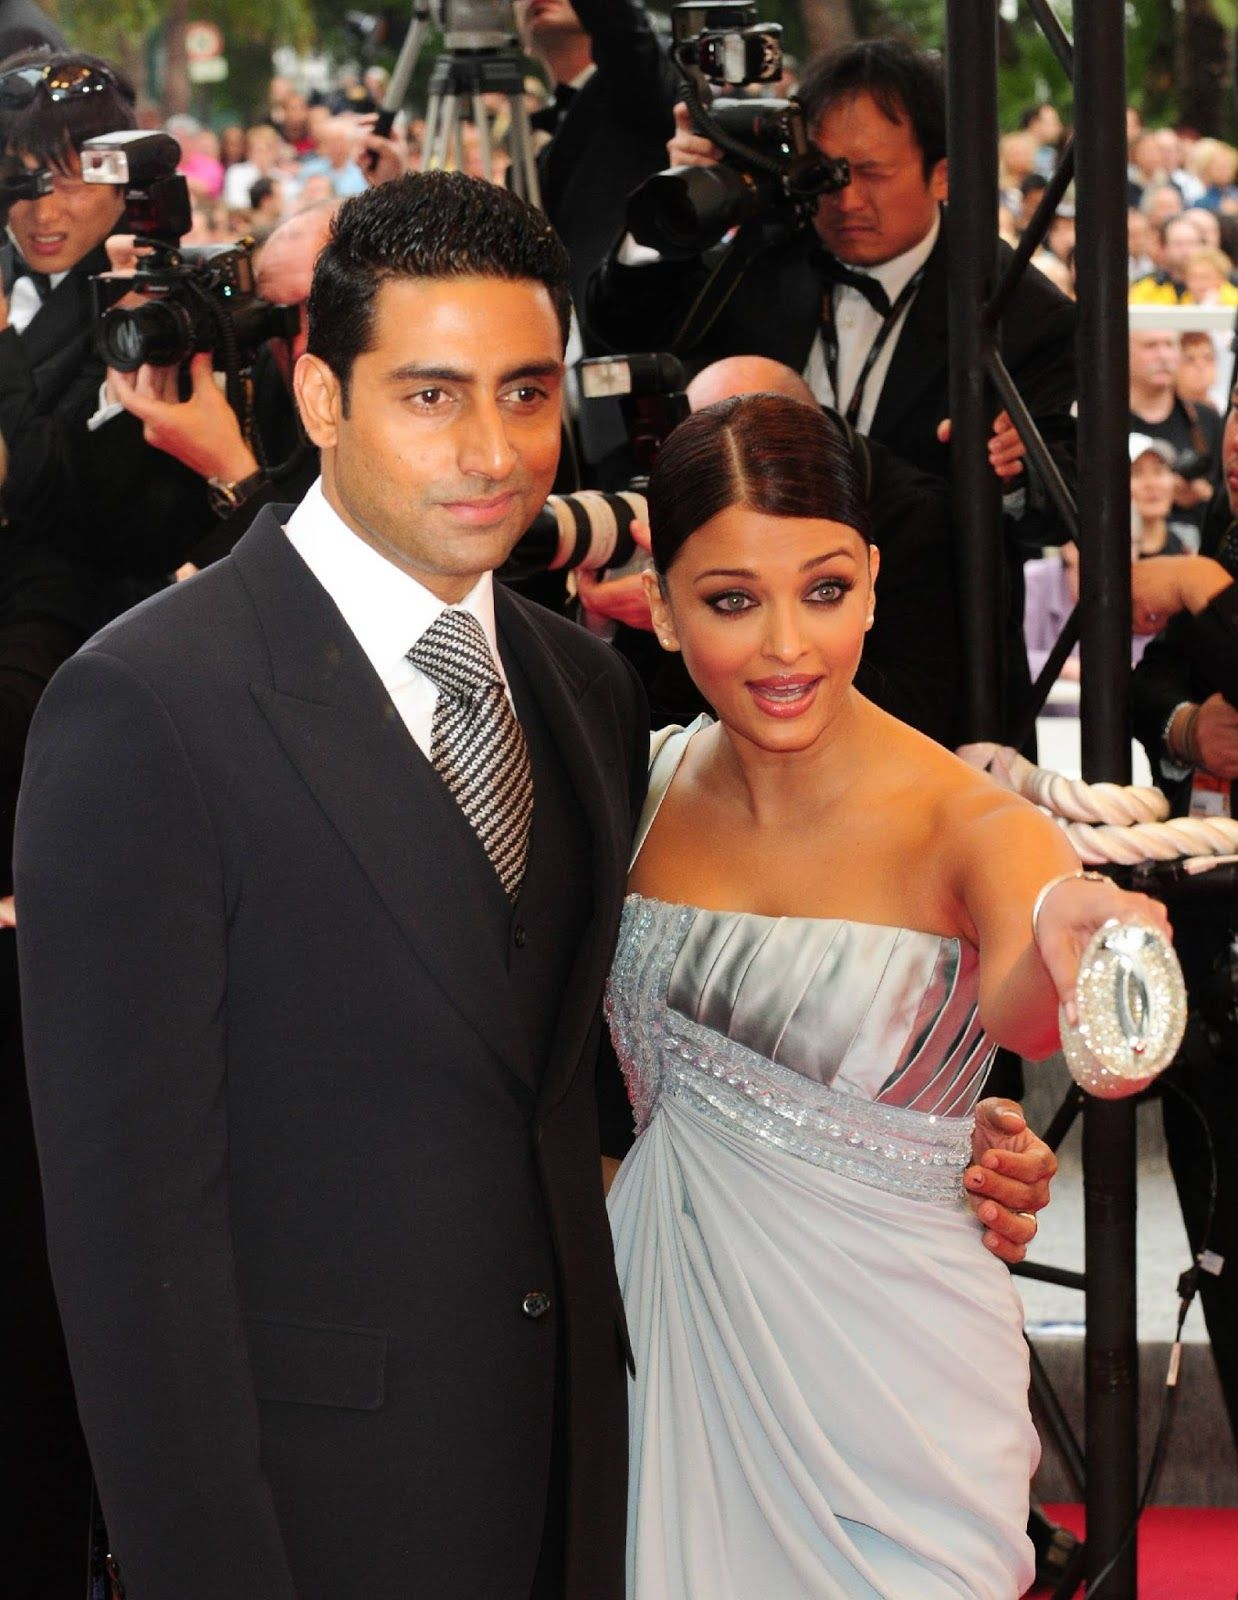 Aishwarya Cannes 2009 Premiere Spring Fever